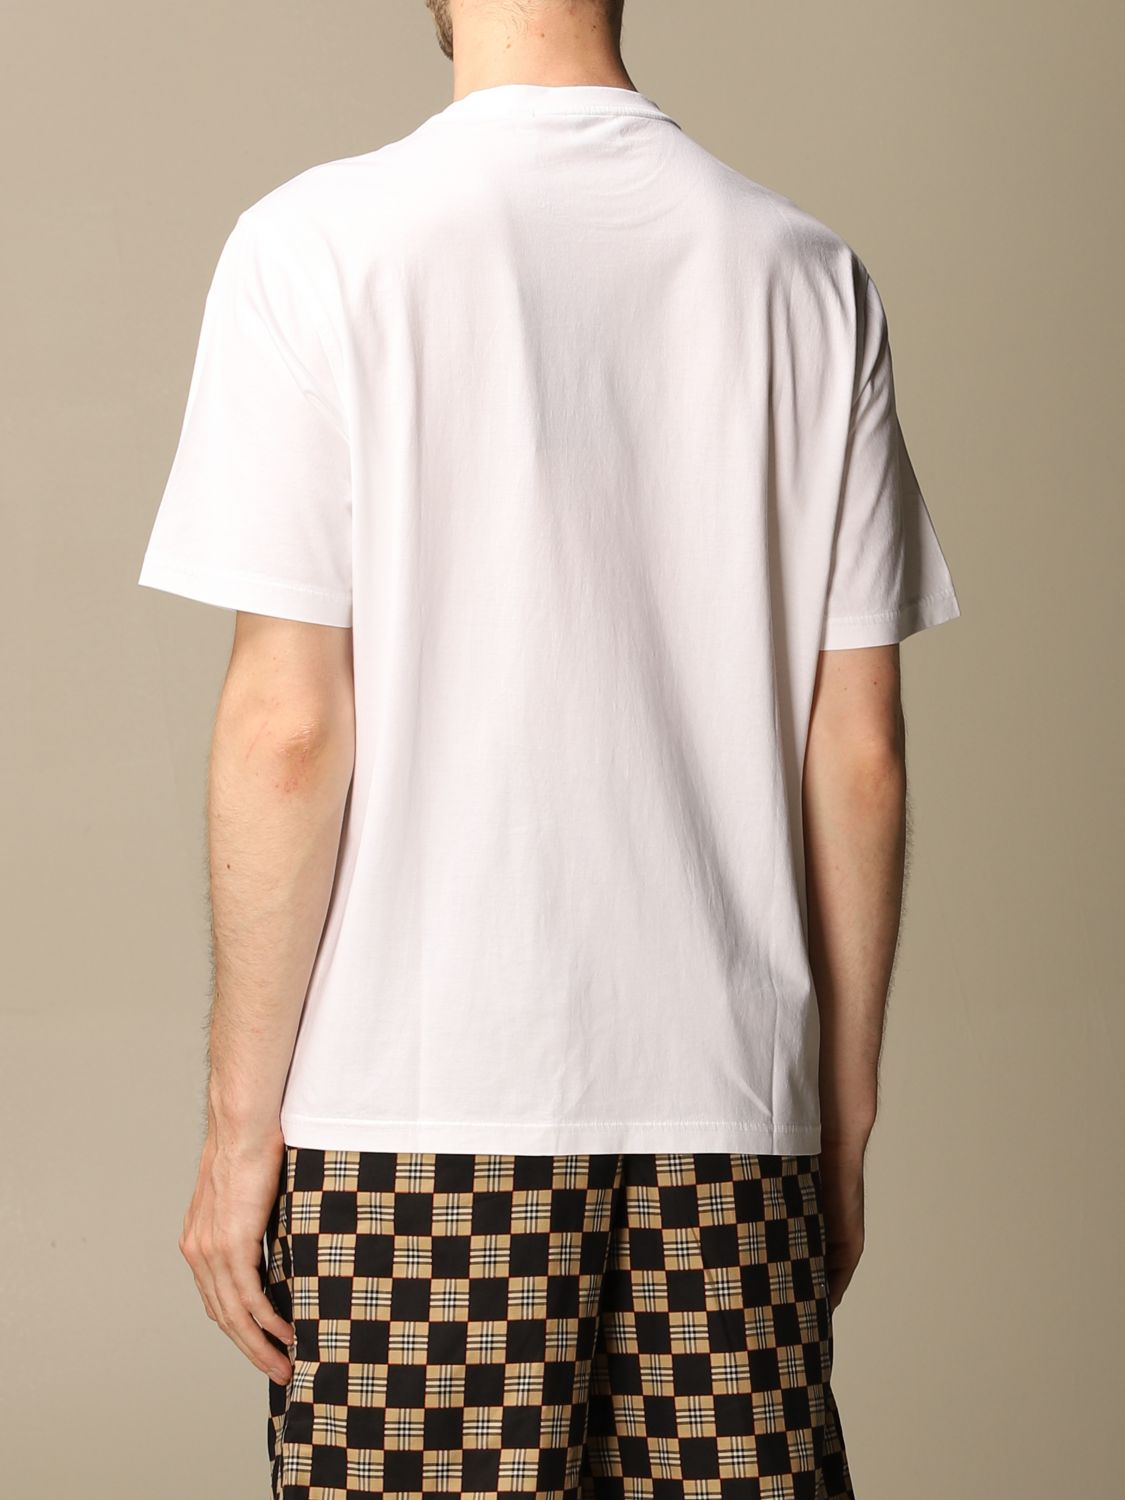 T-shirt Burberry: Ganther Burberry stretch cotton T-shirt with TB monogram white 3